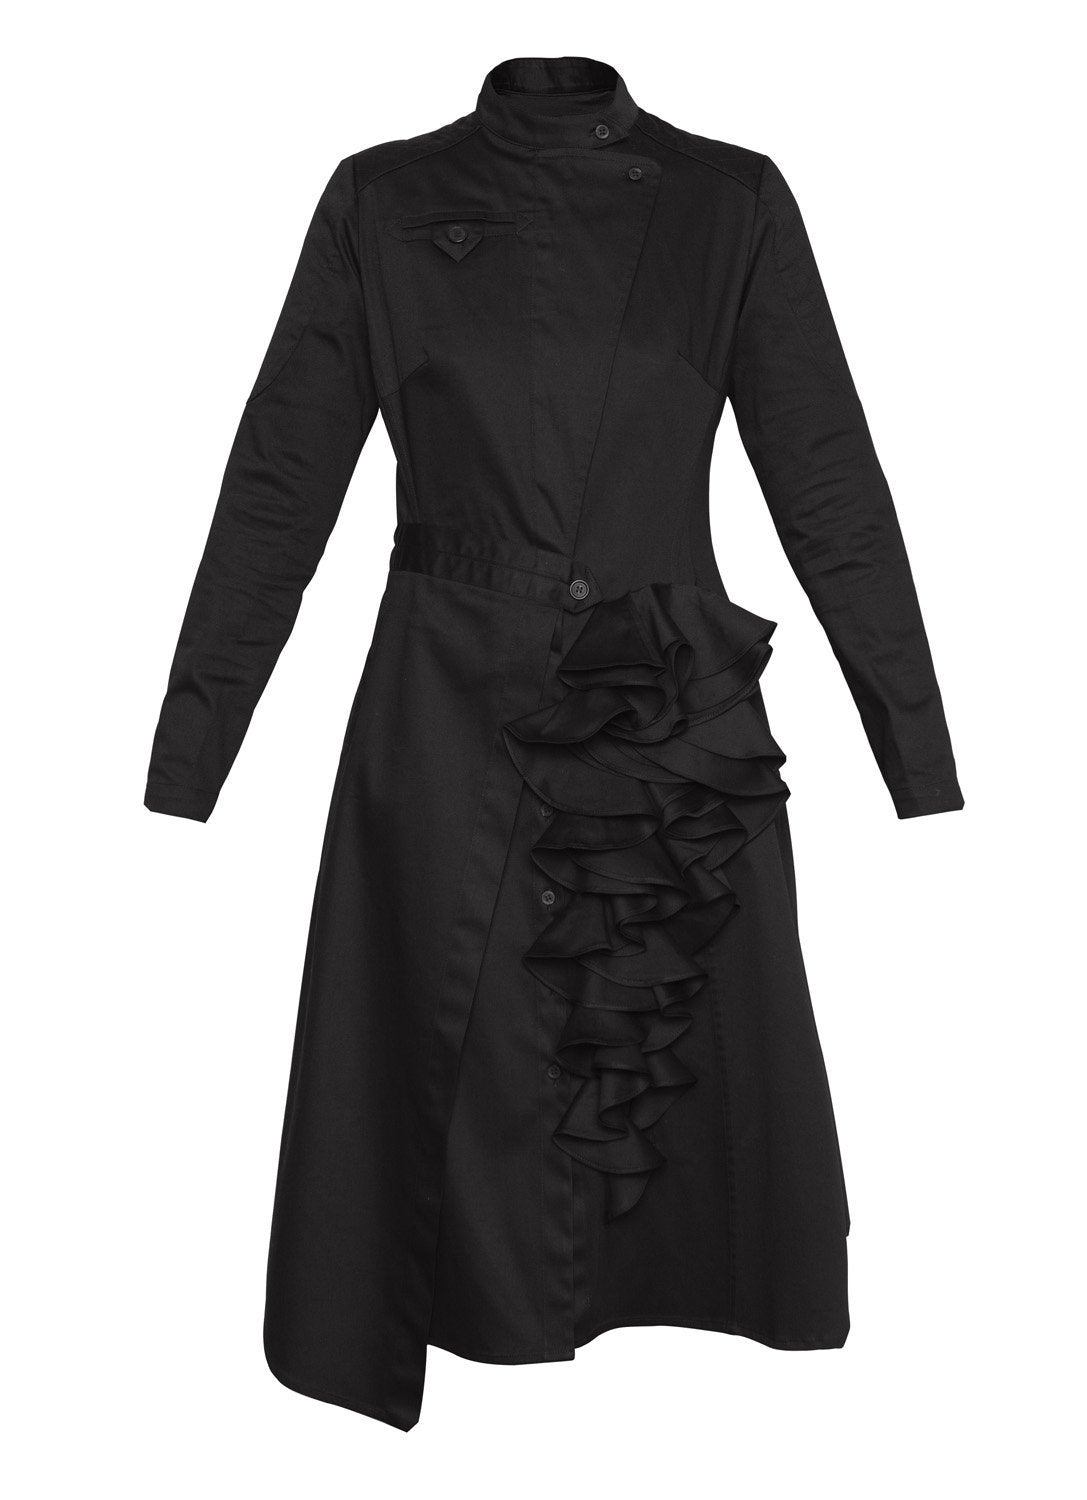 Asymmetric Biker Dress Black - The Clothing LoungeTalented